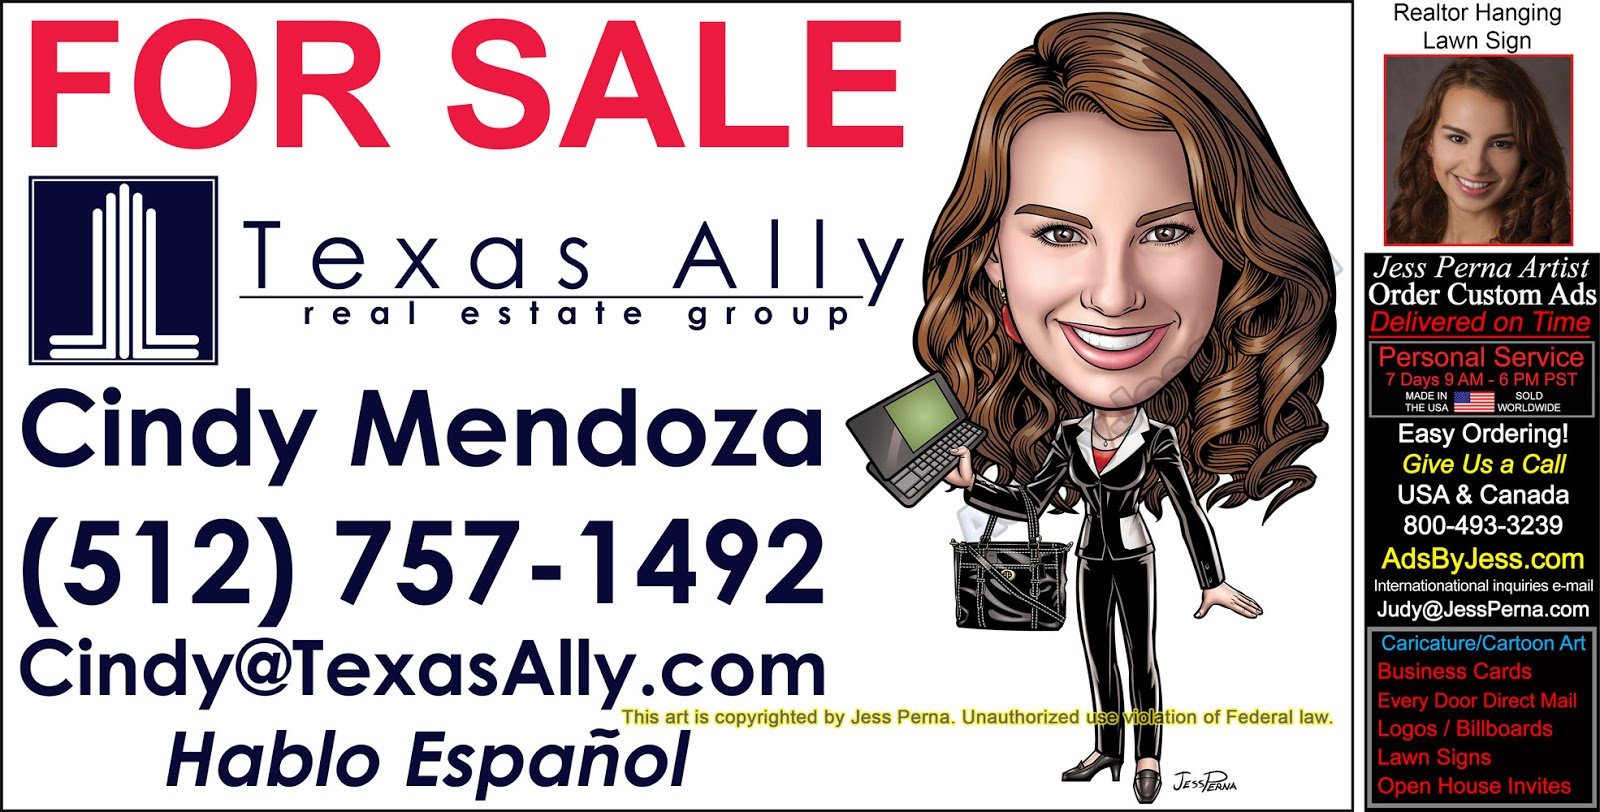 real estate agent ads by jess perna